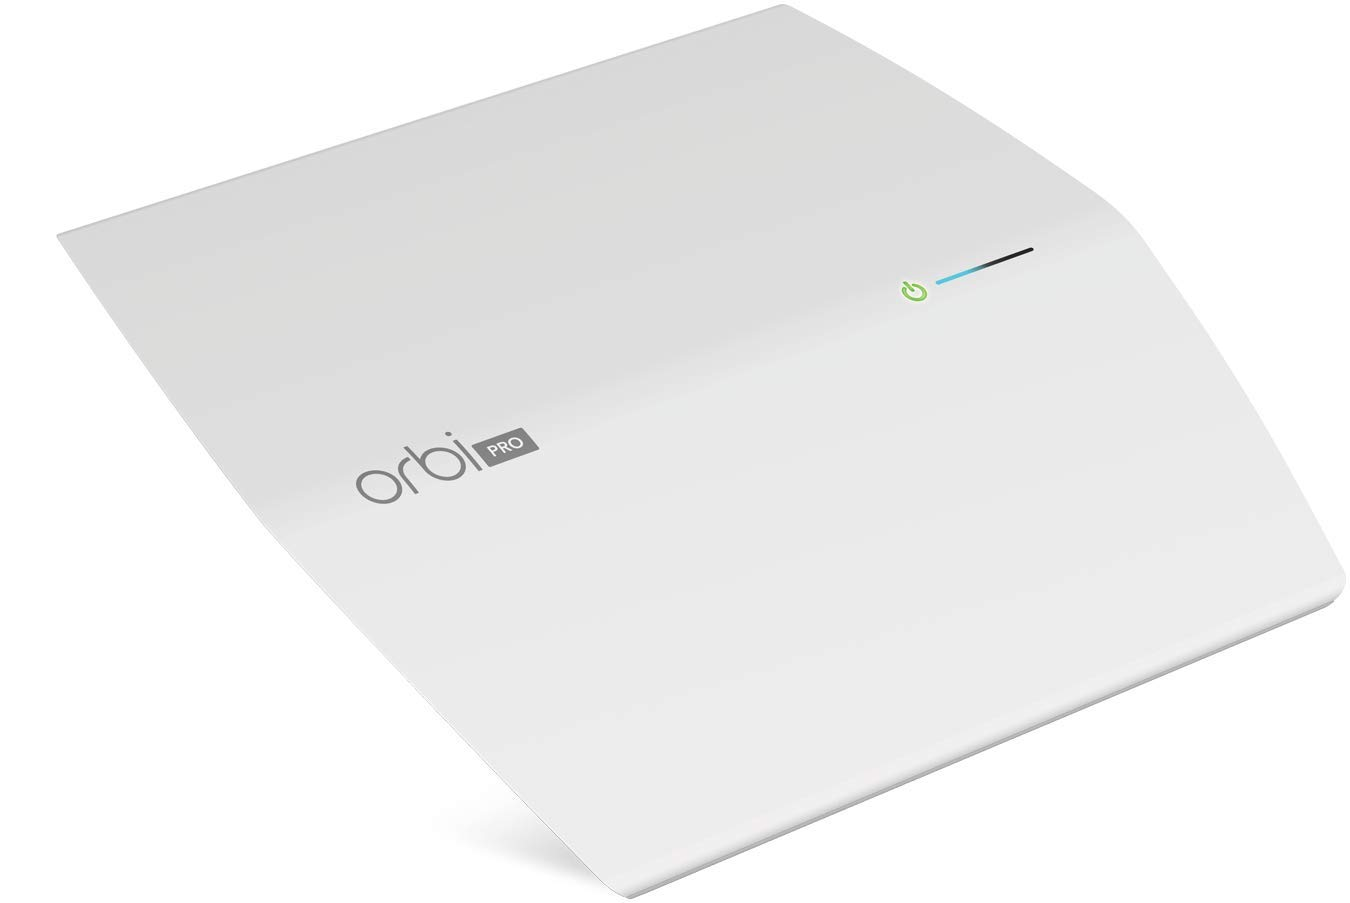 NETGEAR Orbi Pro AC3000 Business Mesh WiFi System, Indoor Expansion,  Wireless Access Point, Ceiling Mountable (SRC60)